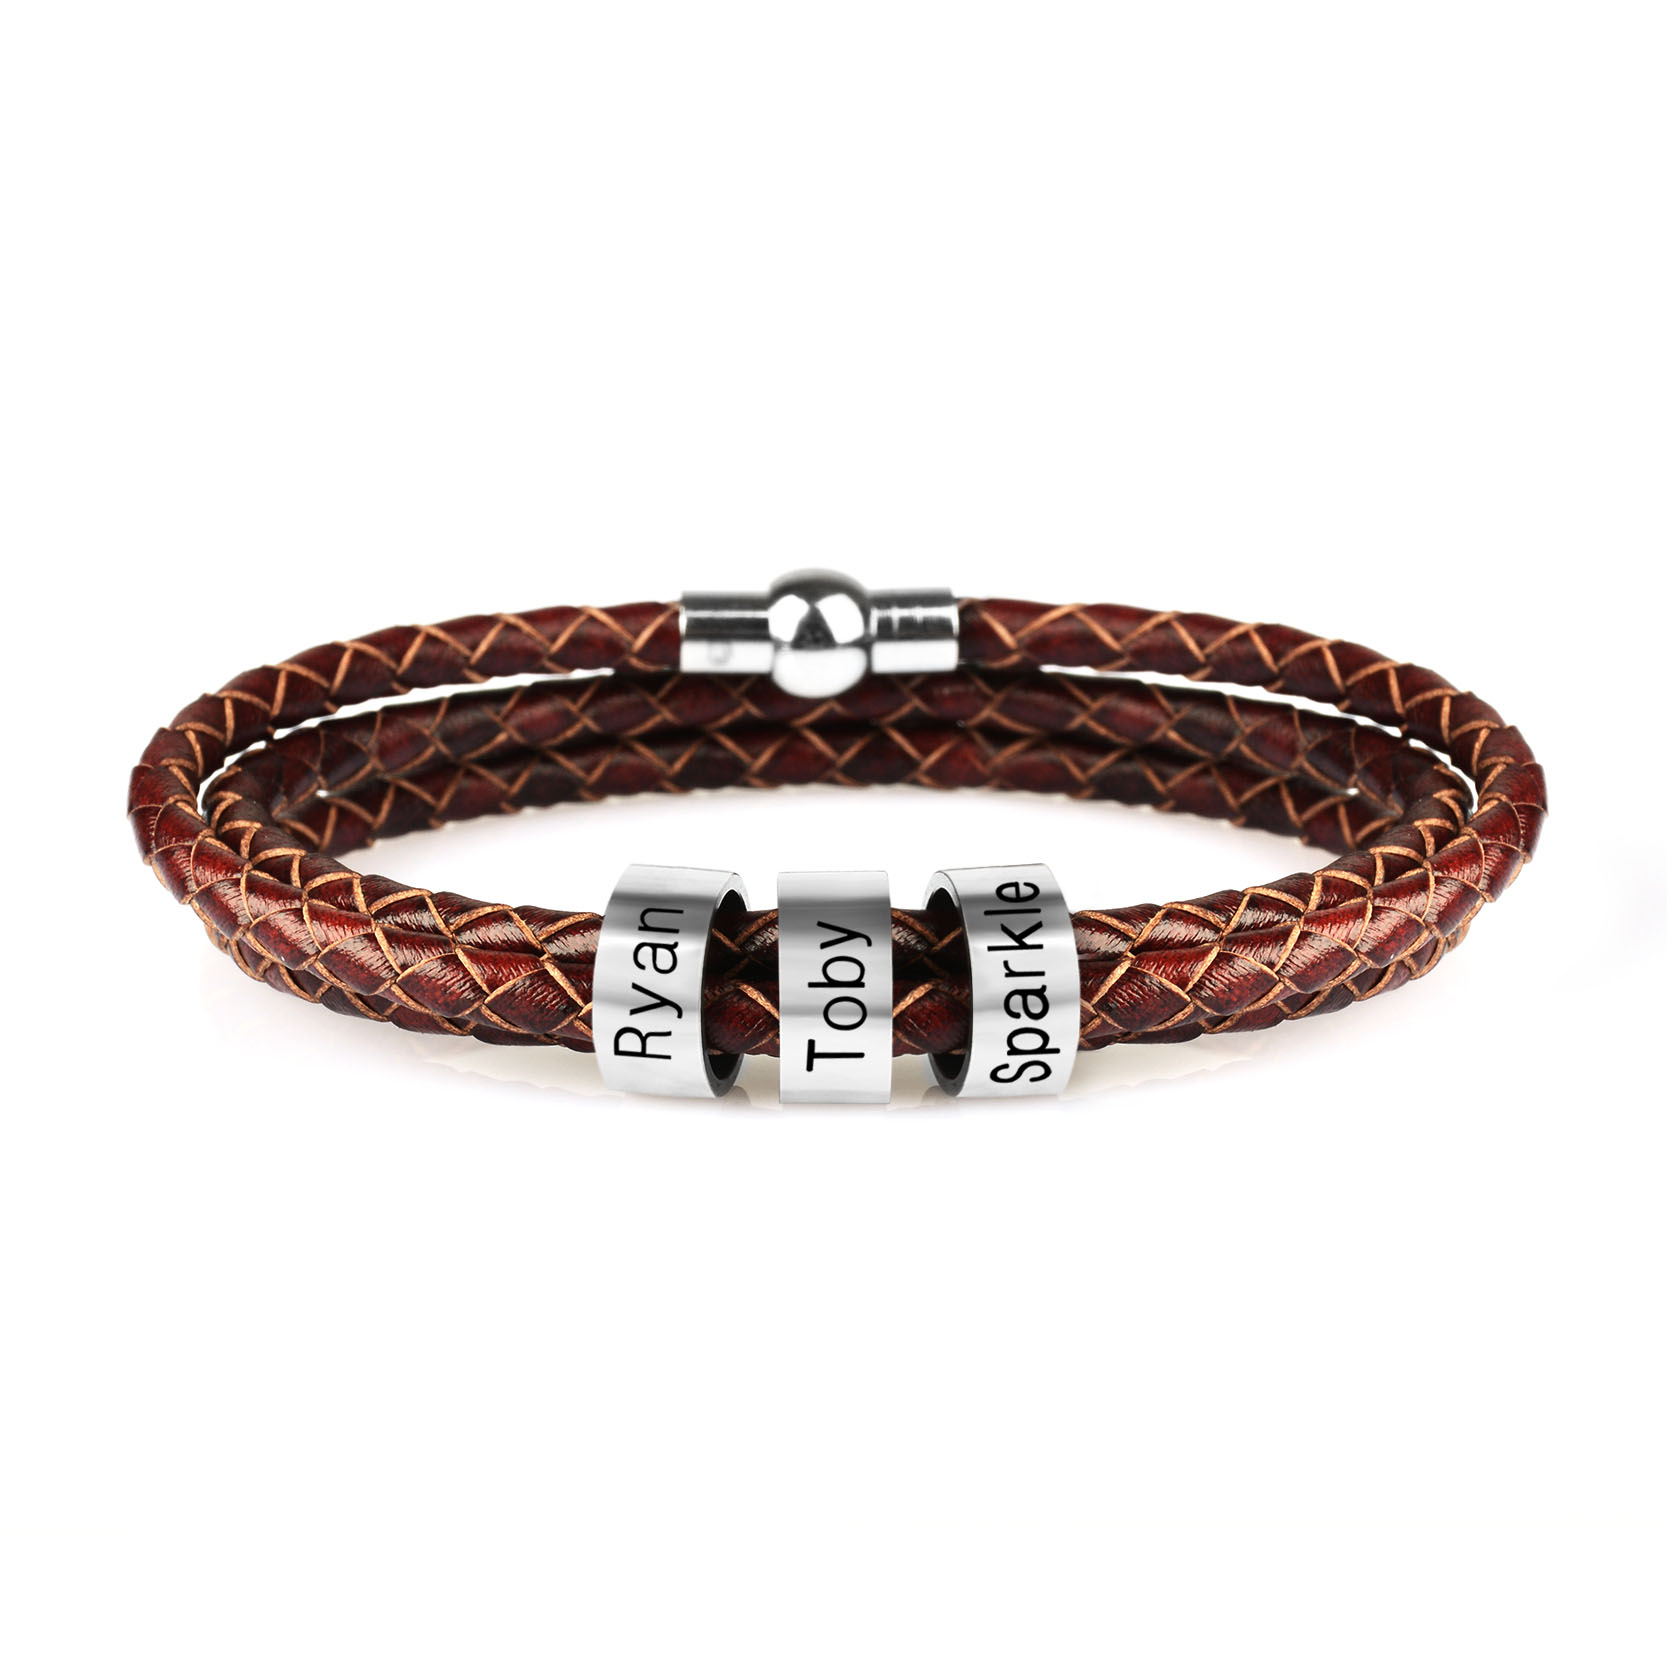 Personalized Mens Braided Genuine Leather Bracelet Stainless Steel Custom Beads Name Bracelet for Men with Family Names KZXL0418